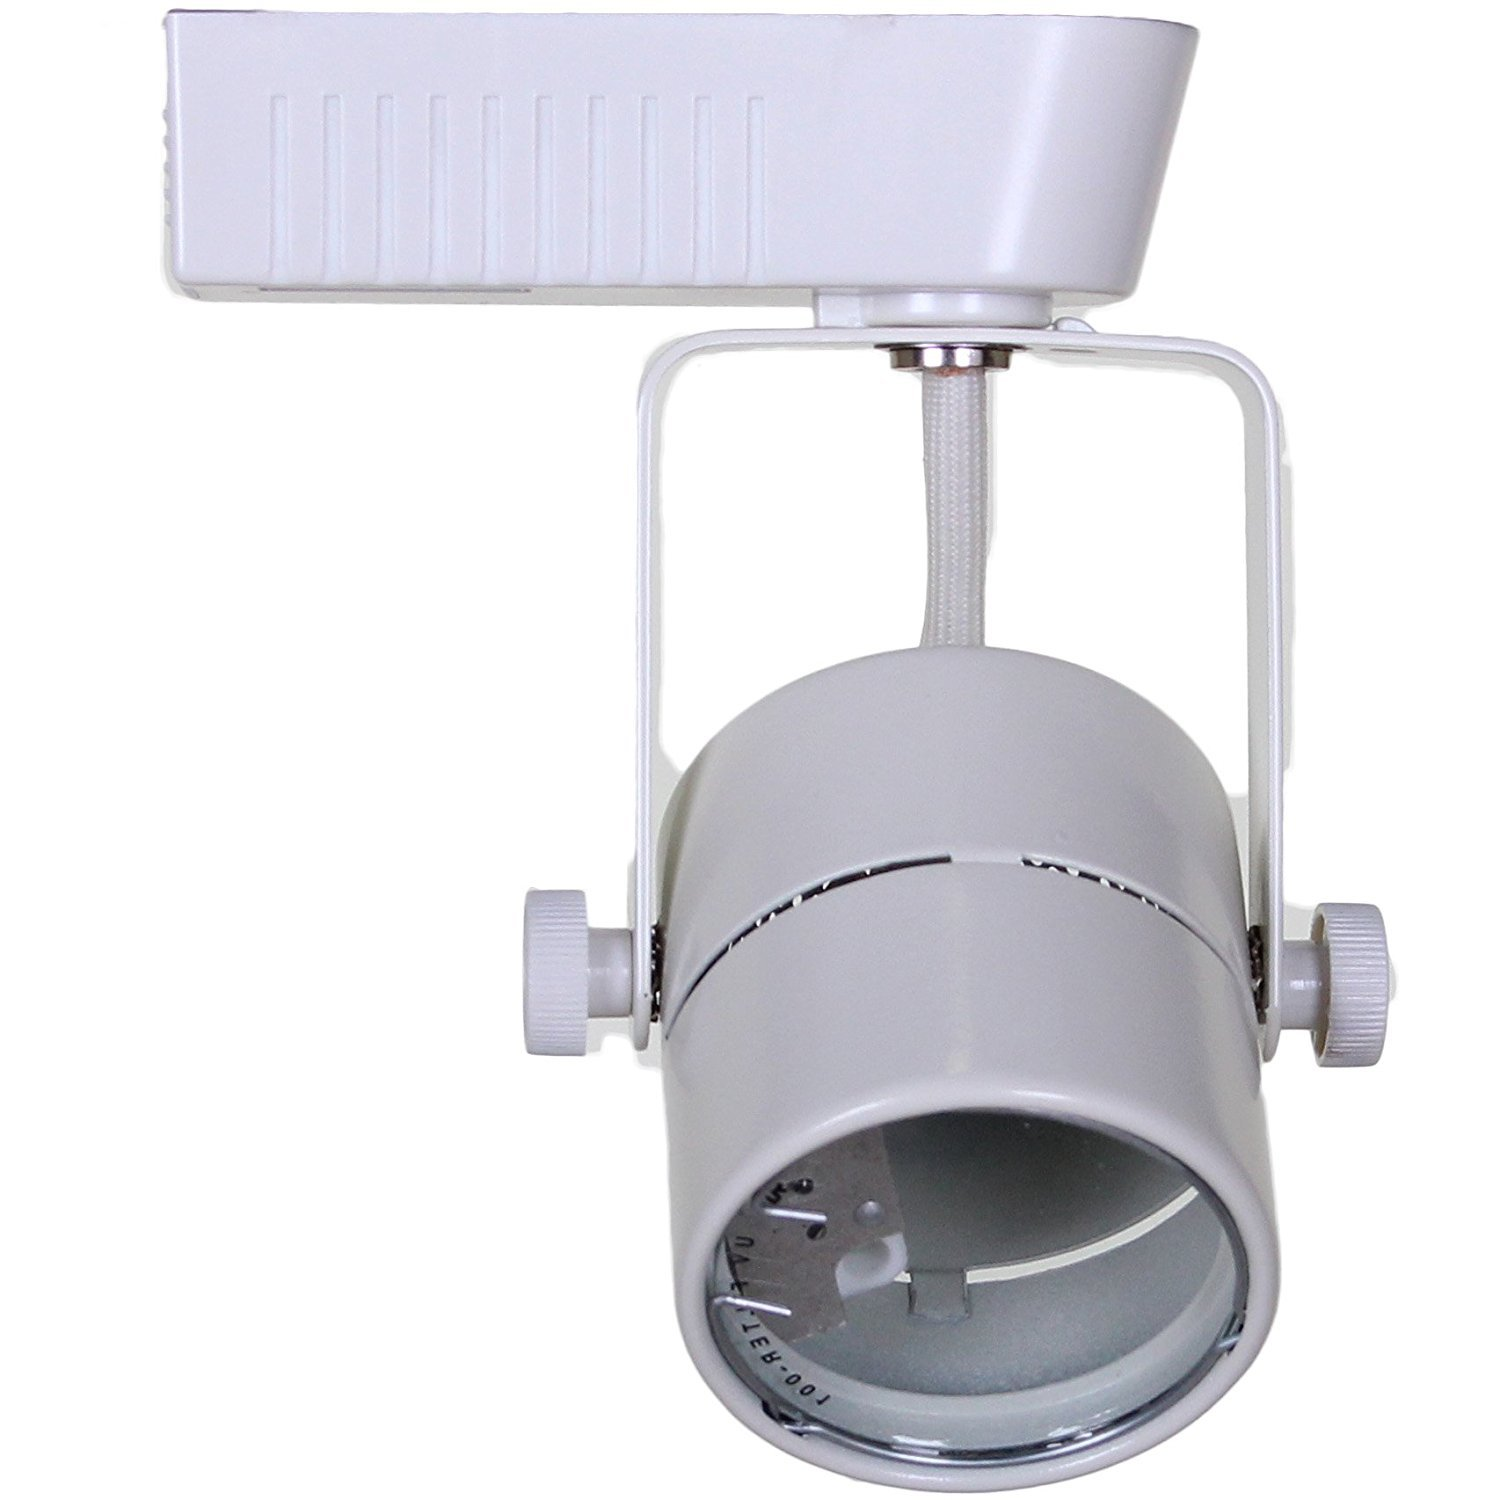 Direct lighting 50010 white mr16 cylinder low voltage track direct lighting 50010 white mr16 cylinder low voltage track lighting head amazon arubaitofo Gallery